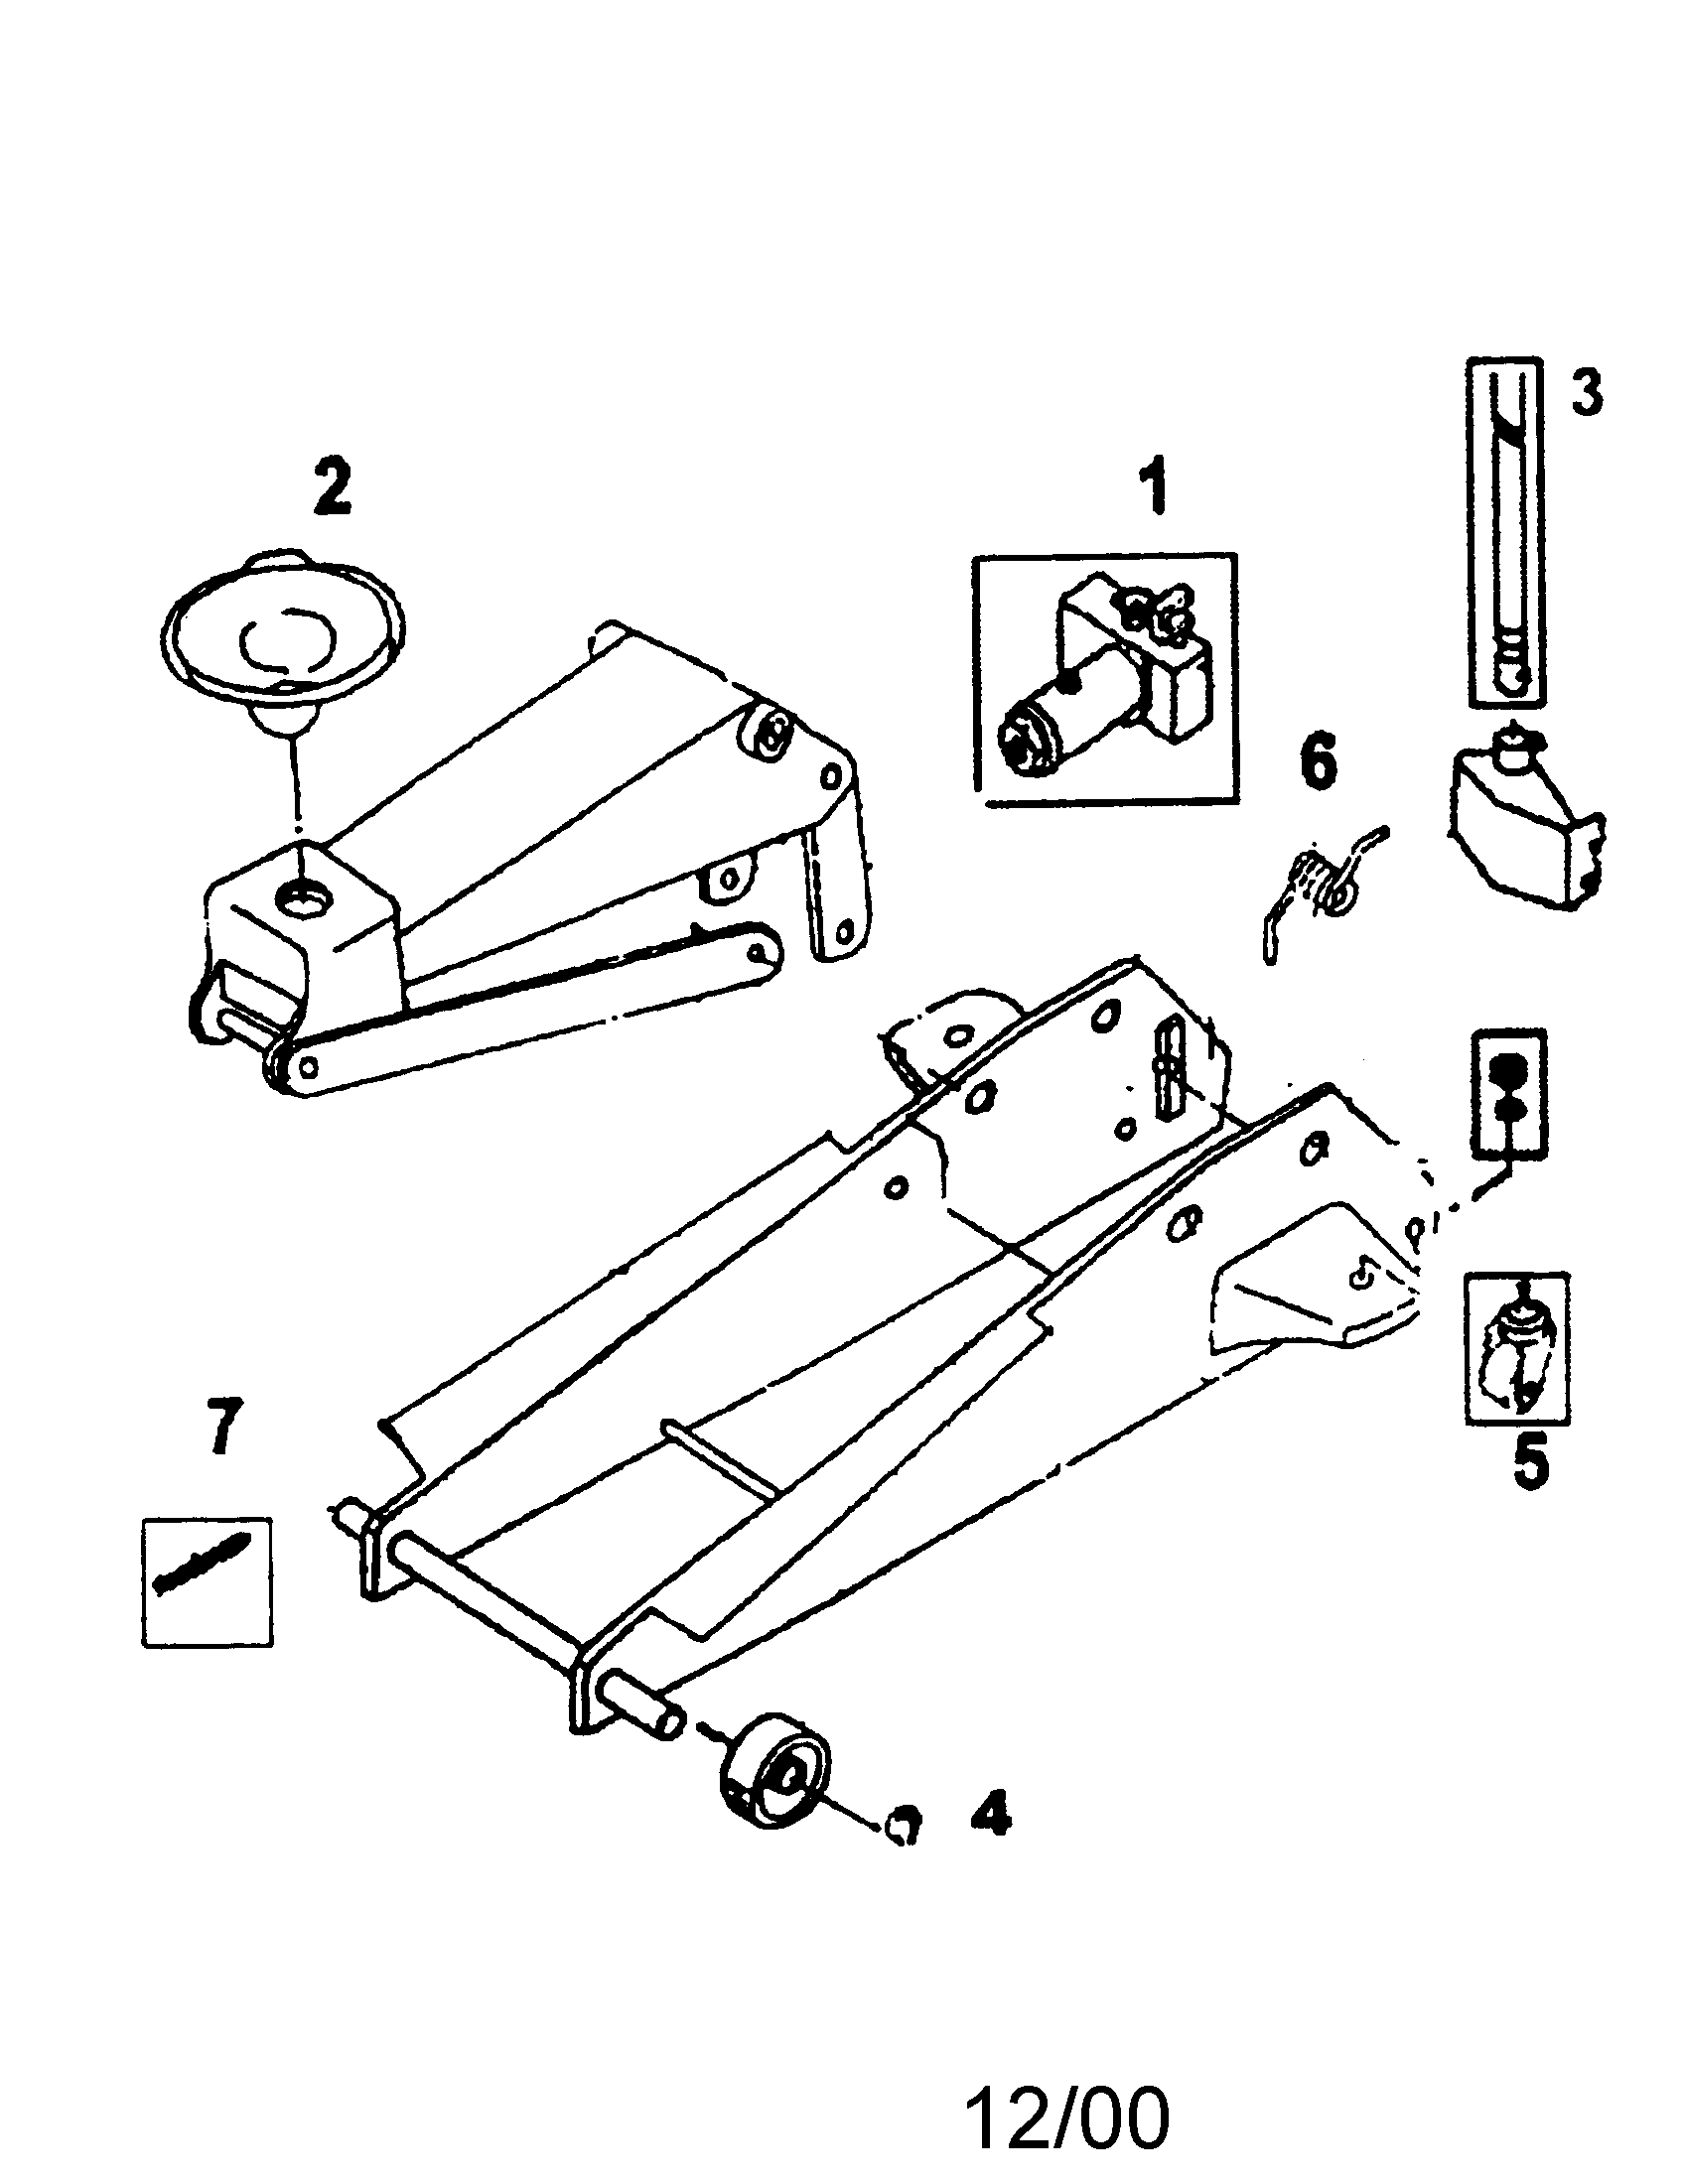 Craftsman model 875501390 jack hydraulic genuine parts rh searspartsdirect simple hydraulic pump diagram hydraulic gear